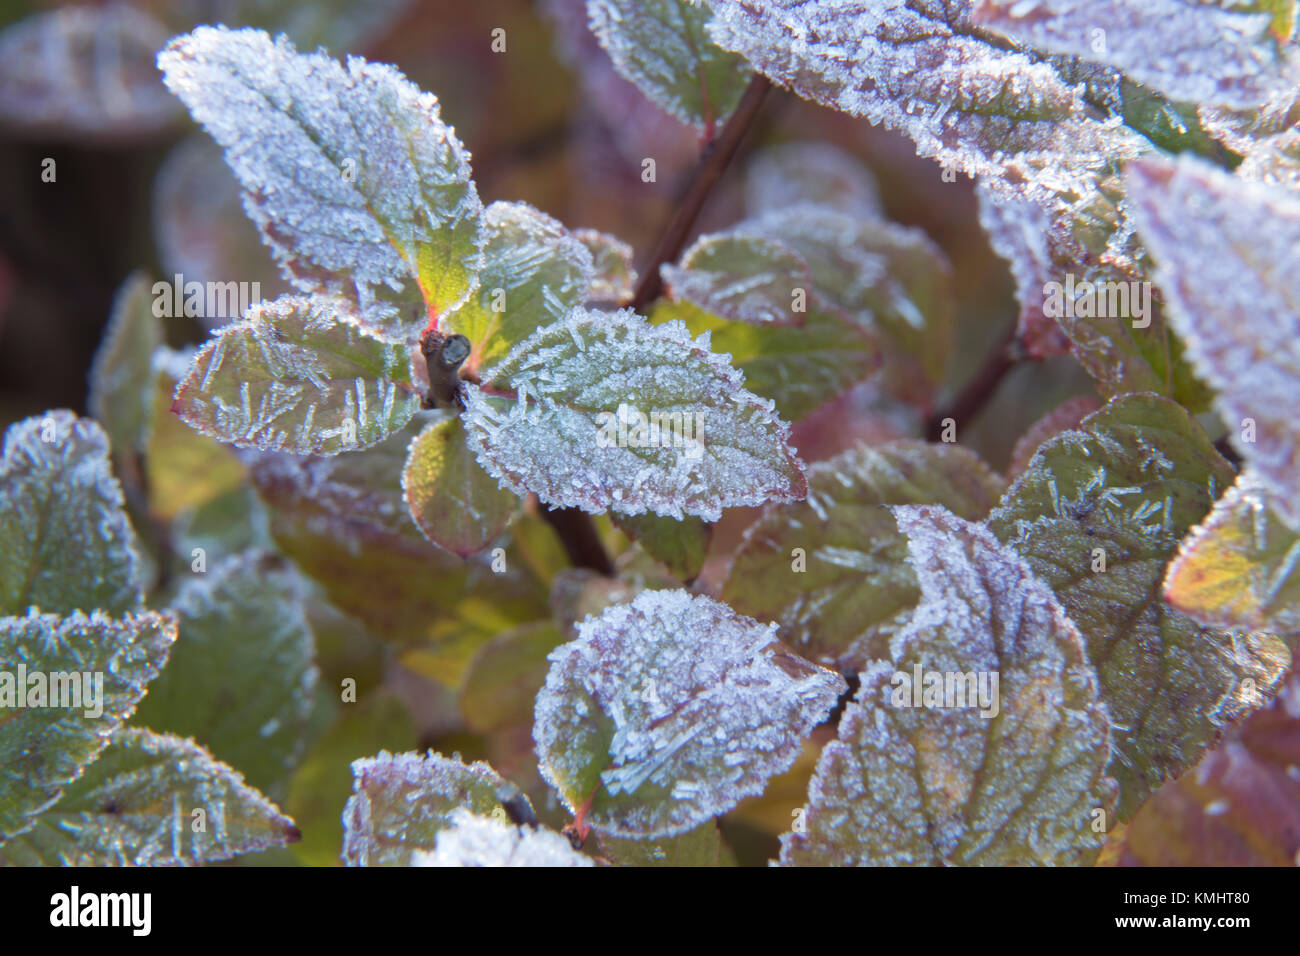 Frost on Leave of a Plant Stock Photo